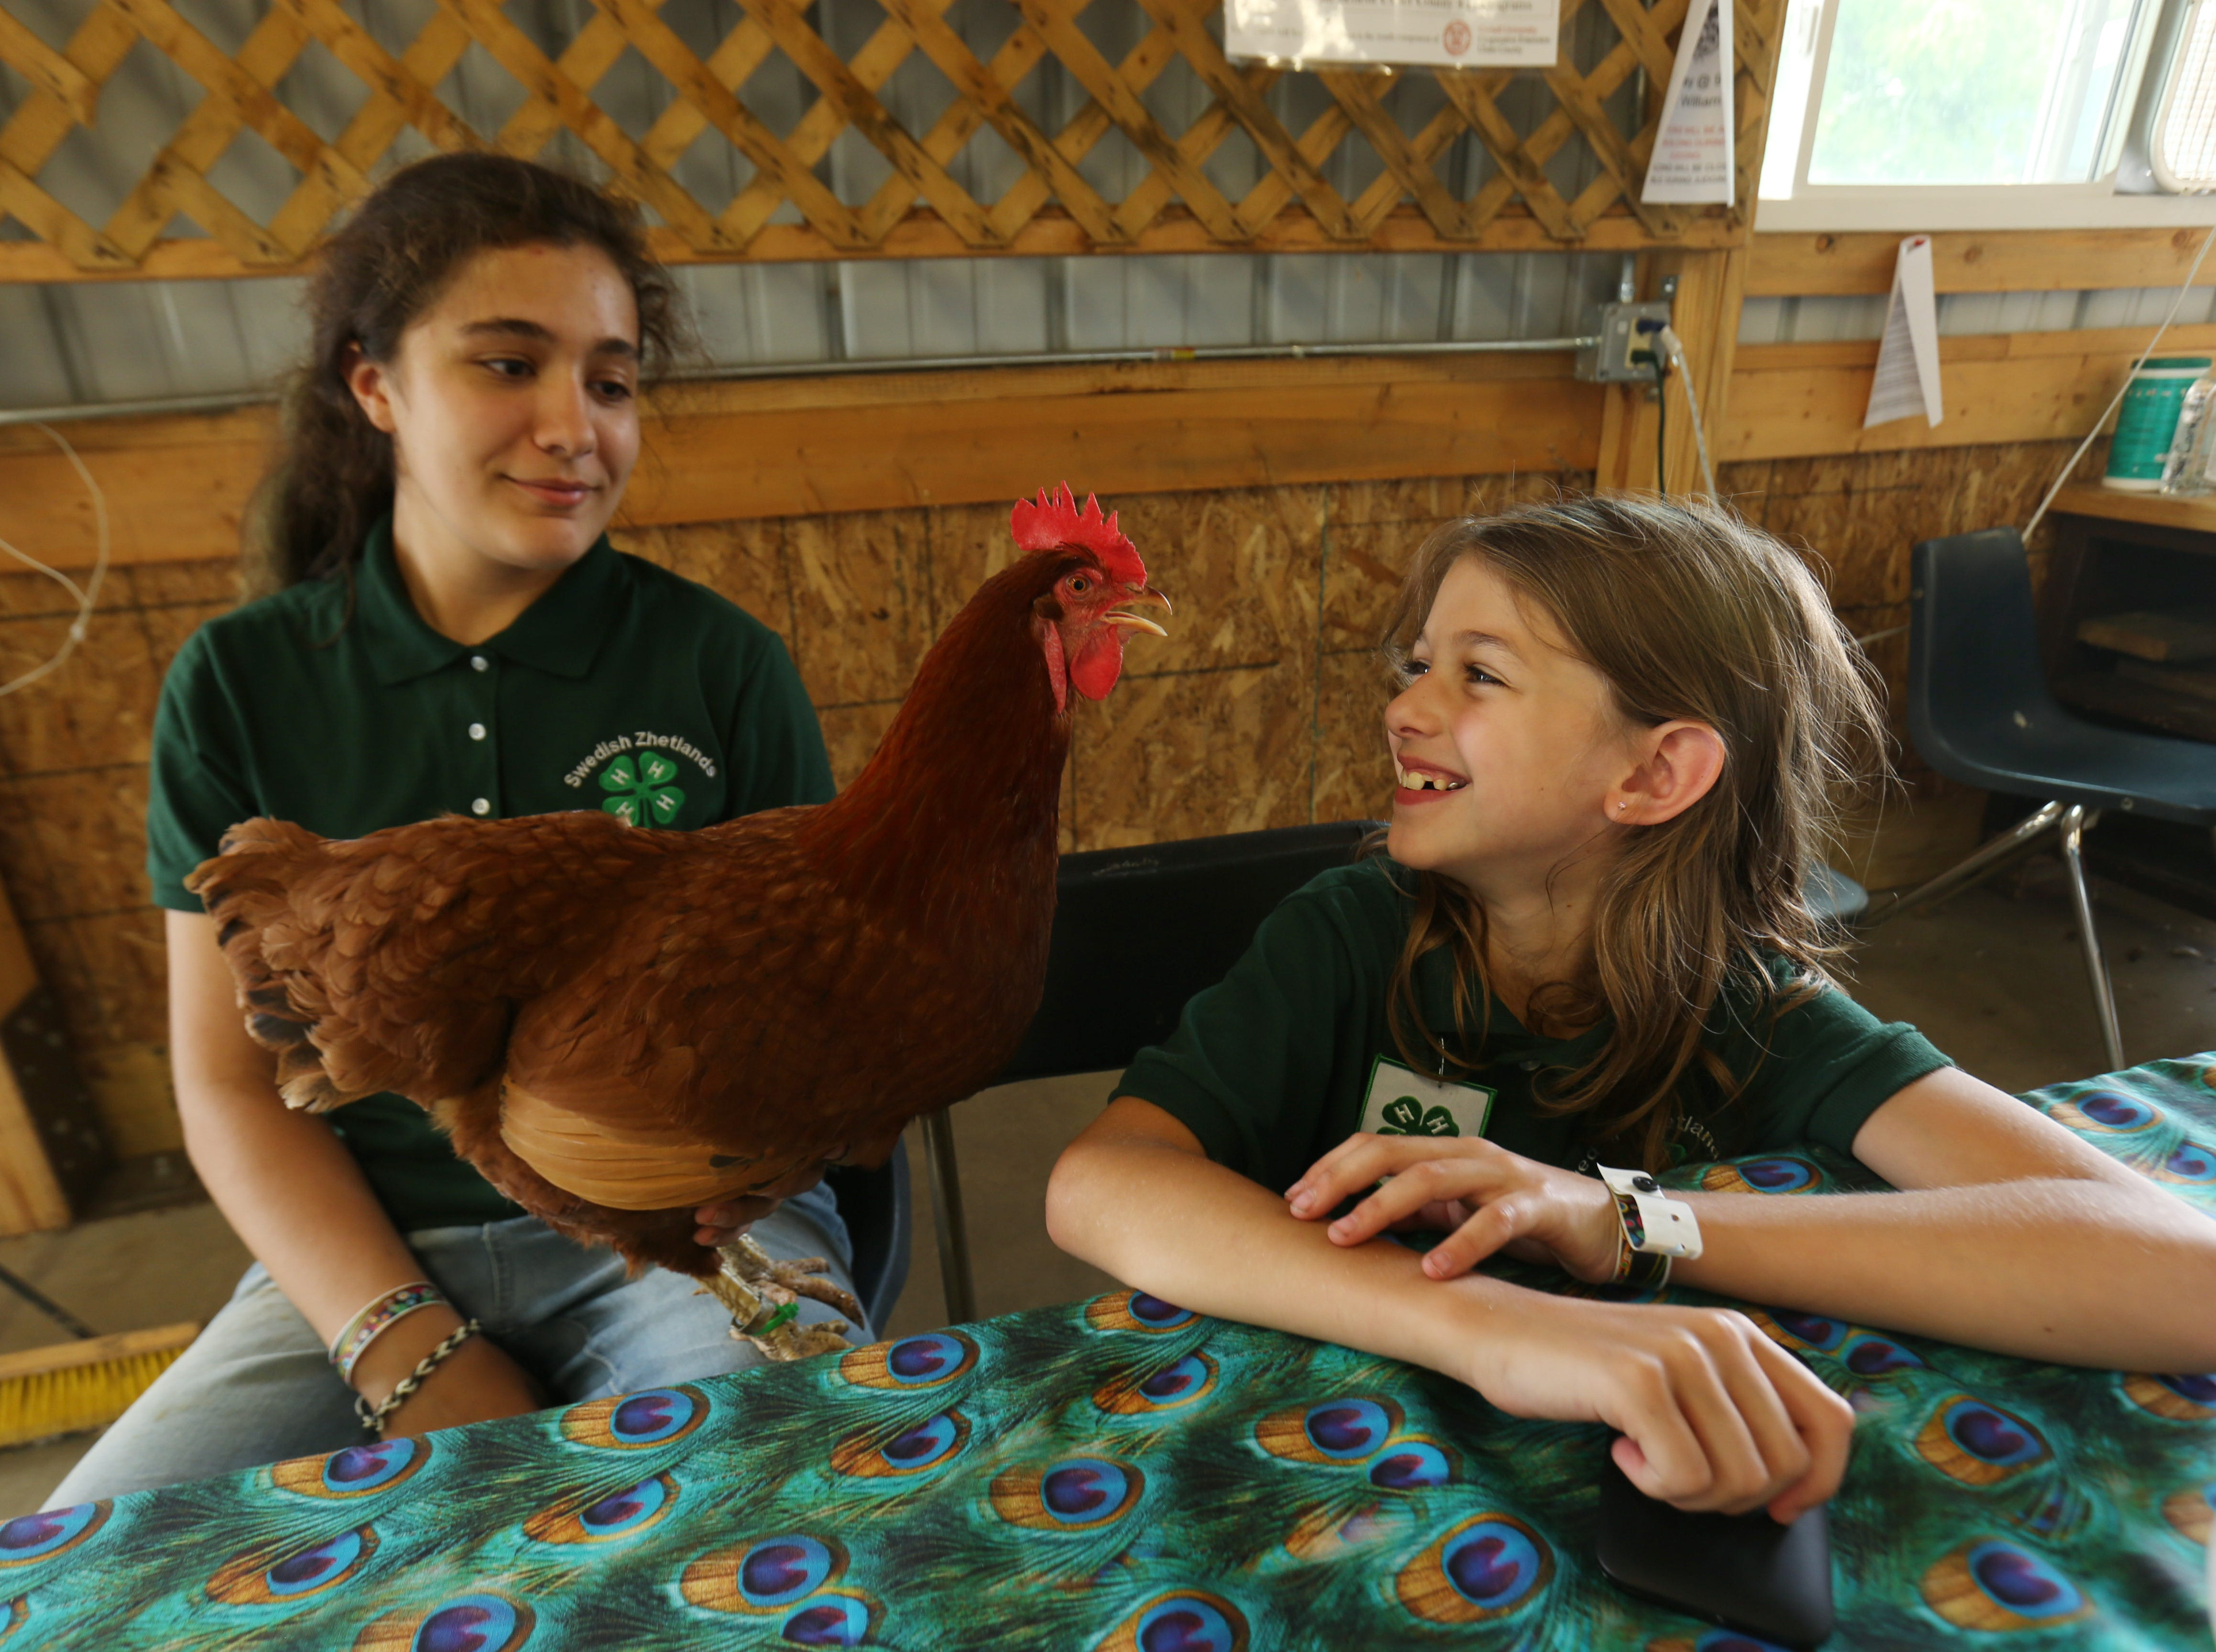 From left, Sophia Secone of Ulster Park and Hailey Loughlin of Shokan spend some time with Sophia's chicken before the crowds file in during the Ulster County Fair in New Paltz on July 31, 2018.